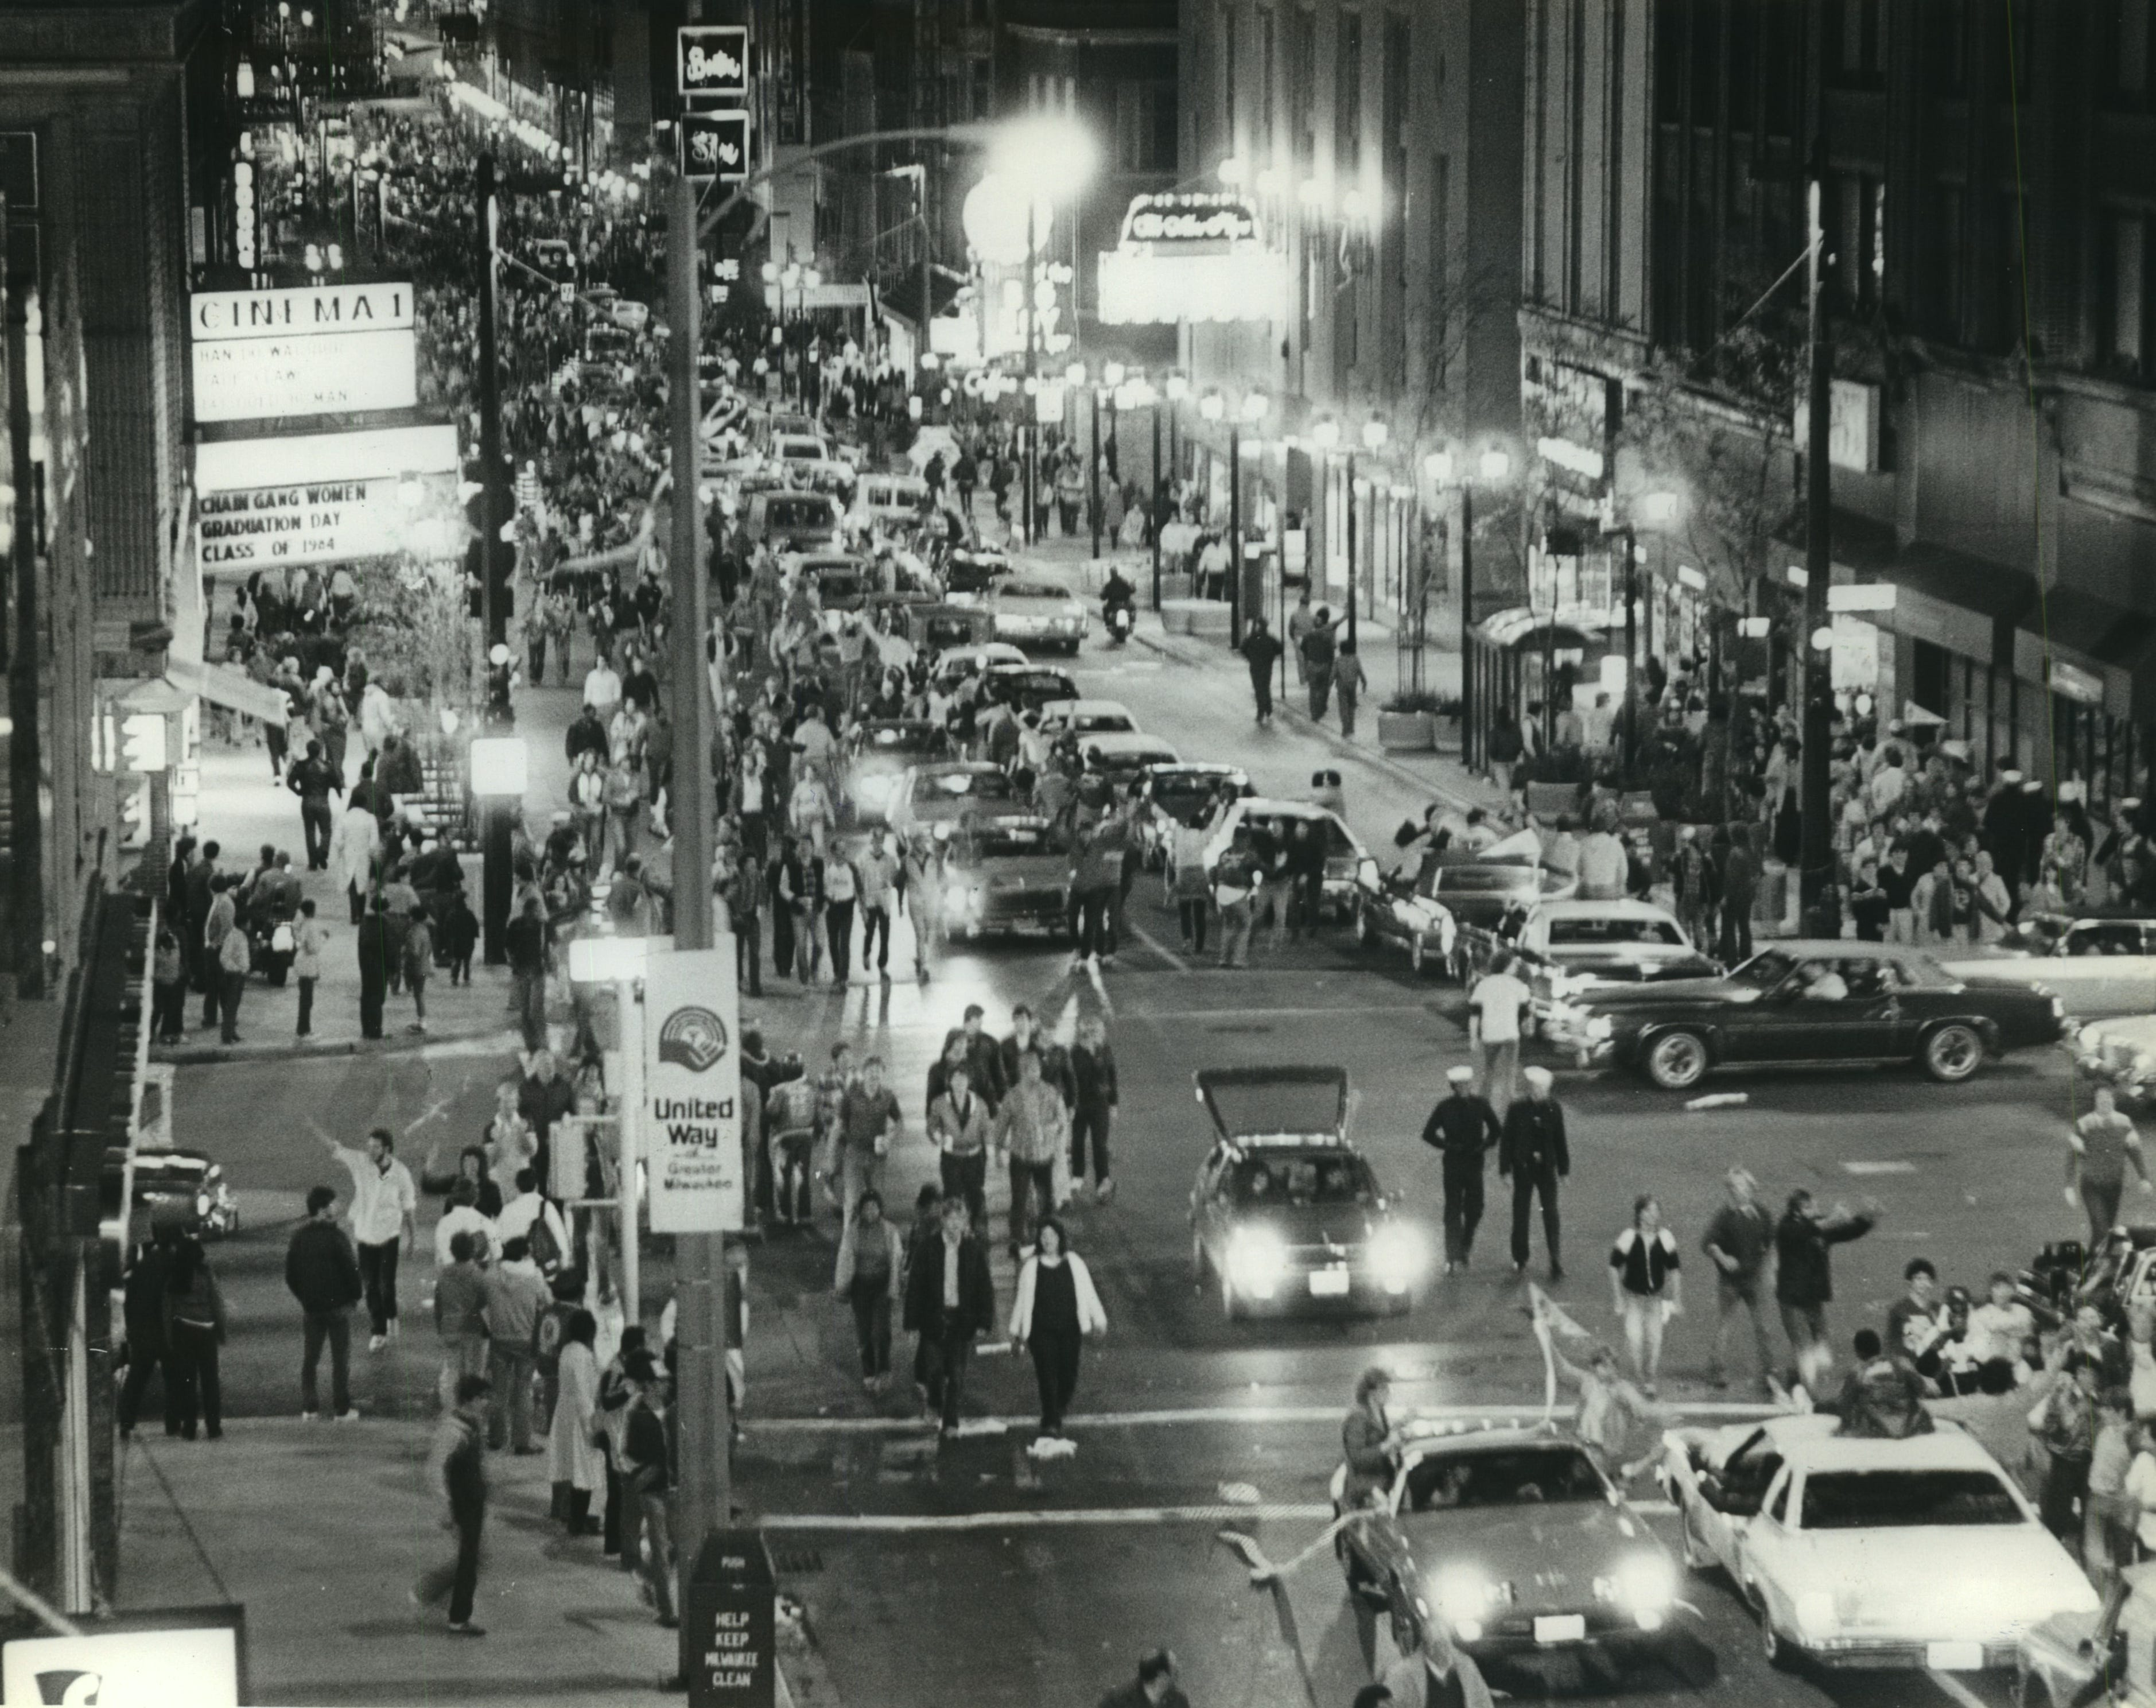 Wisconsin Avenue is turned into a party on Oct. 10, 1982, as fans walk up and down the street to celebrate the Milwaukee Brewers winning the American League pennant and going to their first World Series.